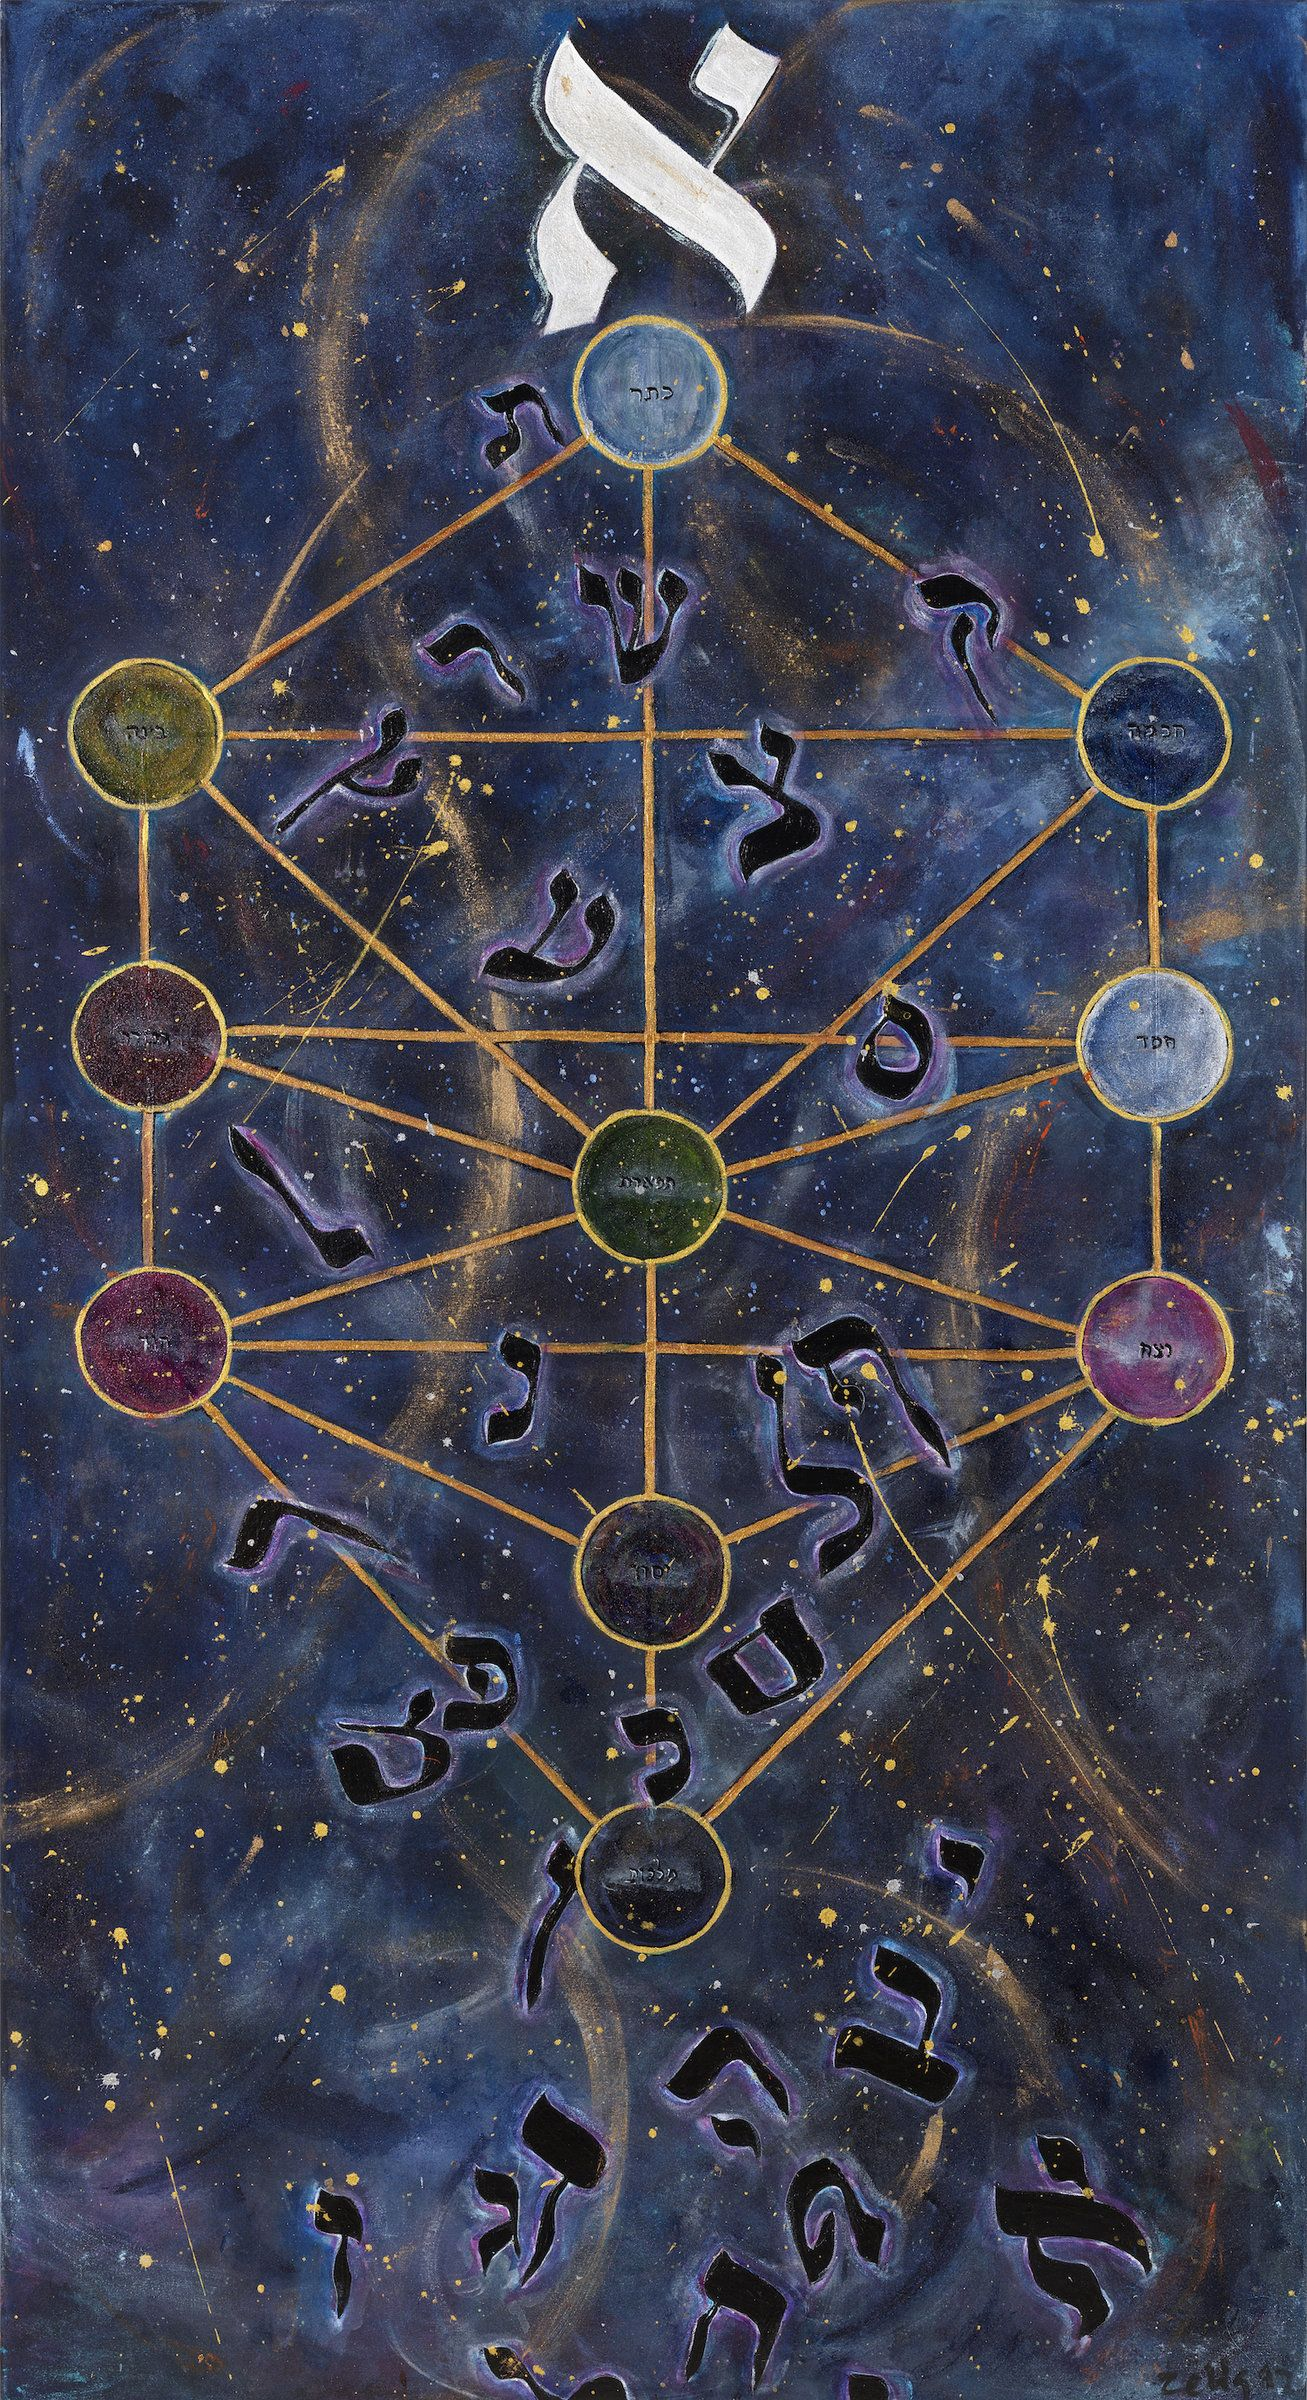 Divine Emanations Kabbalah Tree Of Life By Chana Zelig Acrylic Painting Artful Home Tree Of Life Tree Of Life Tattoo Tree Of Life Artwork Dion fortune explains it better than i can: divine emanations kabbalah tree of